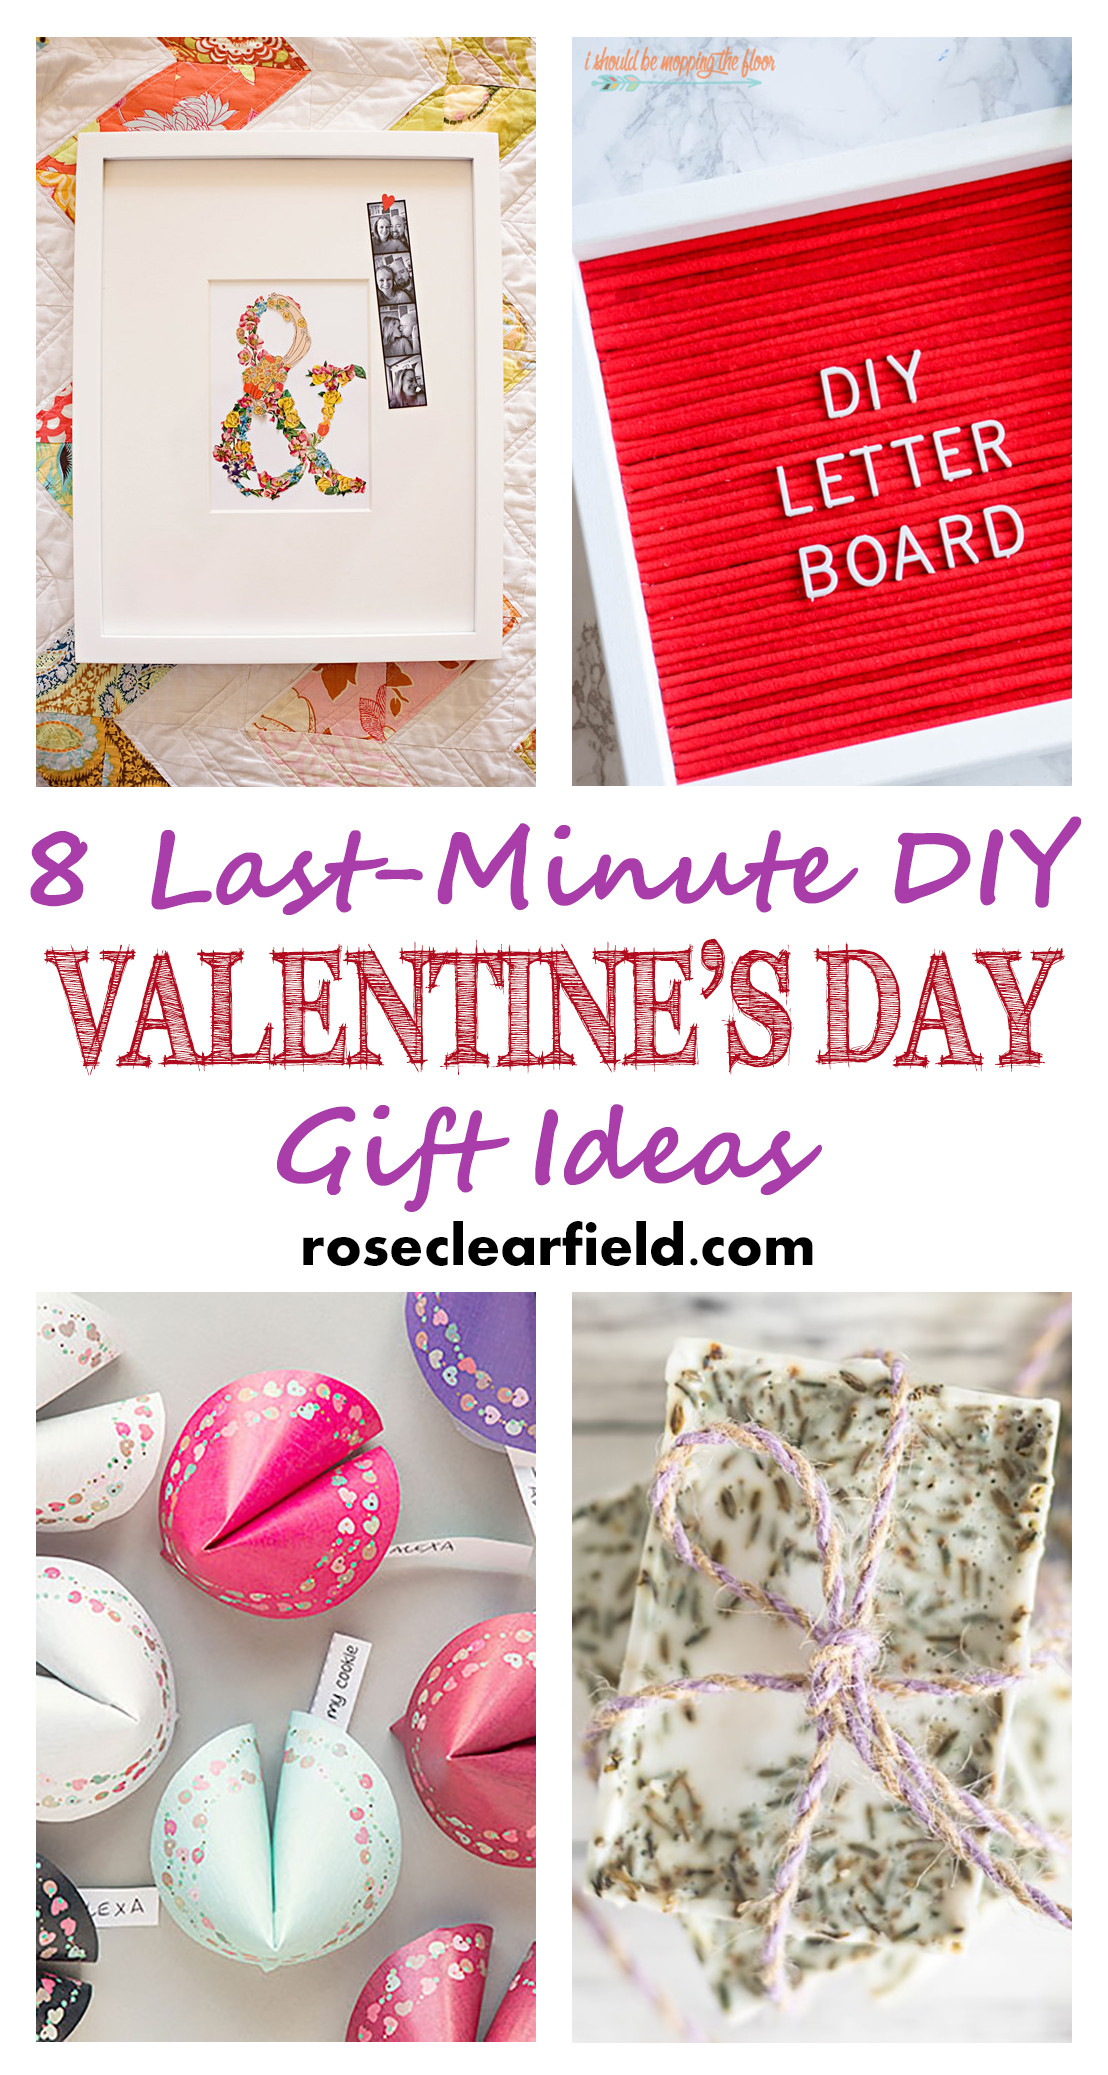 Diy Valentines Gift Ideas  Last Minute DIY Valentine s Day Gift Ideas • Rose Clearfield